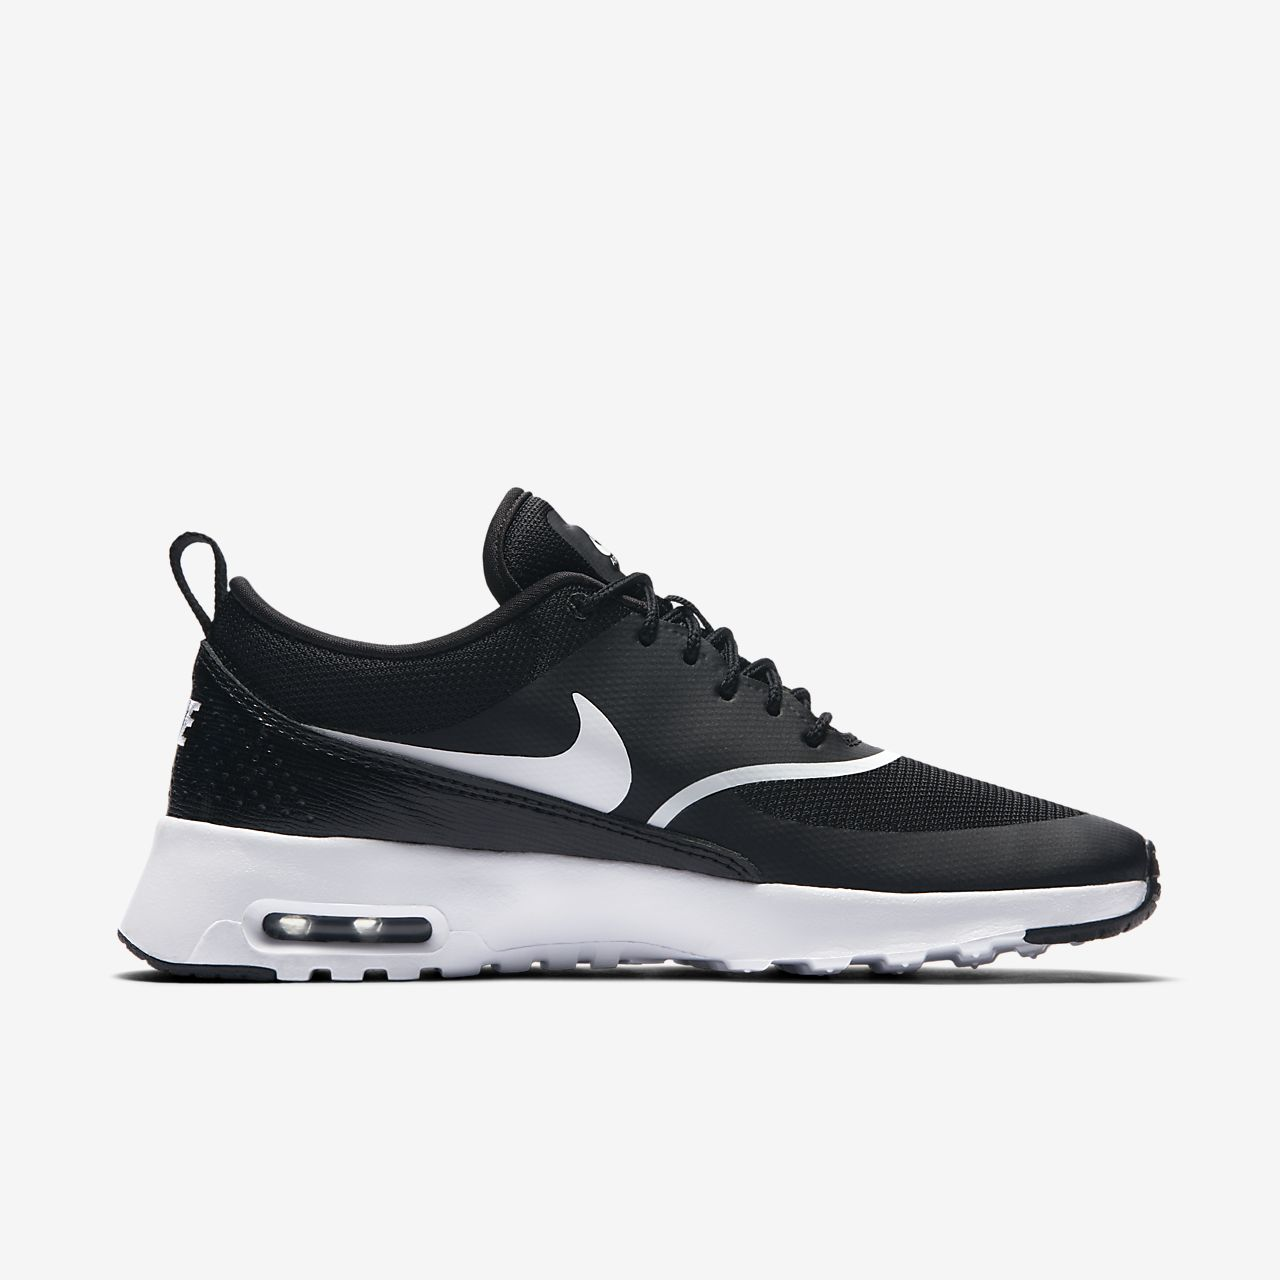 NIKE AIR MAX THEA Women Scarpe Sneaker Donna 599409020 BLACK WHITE CLASSIC